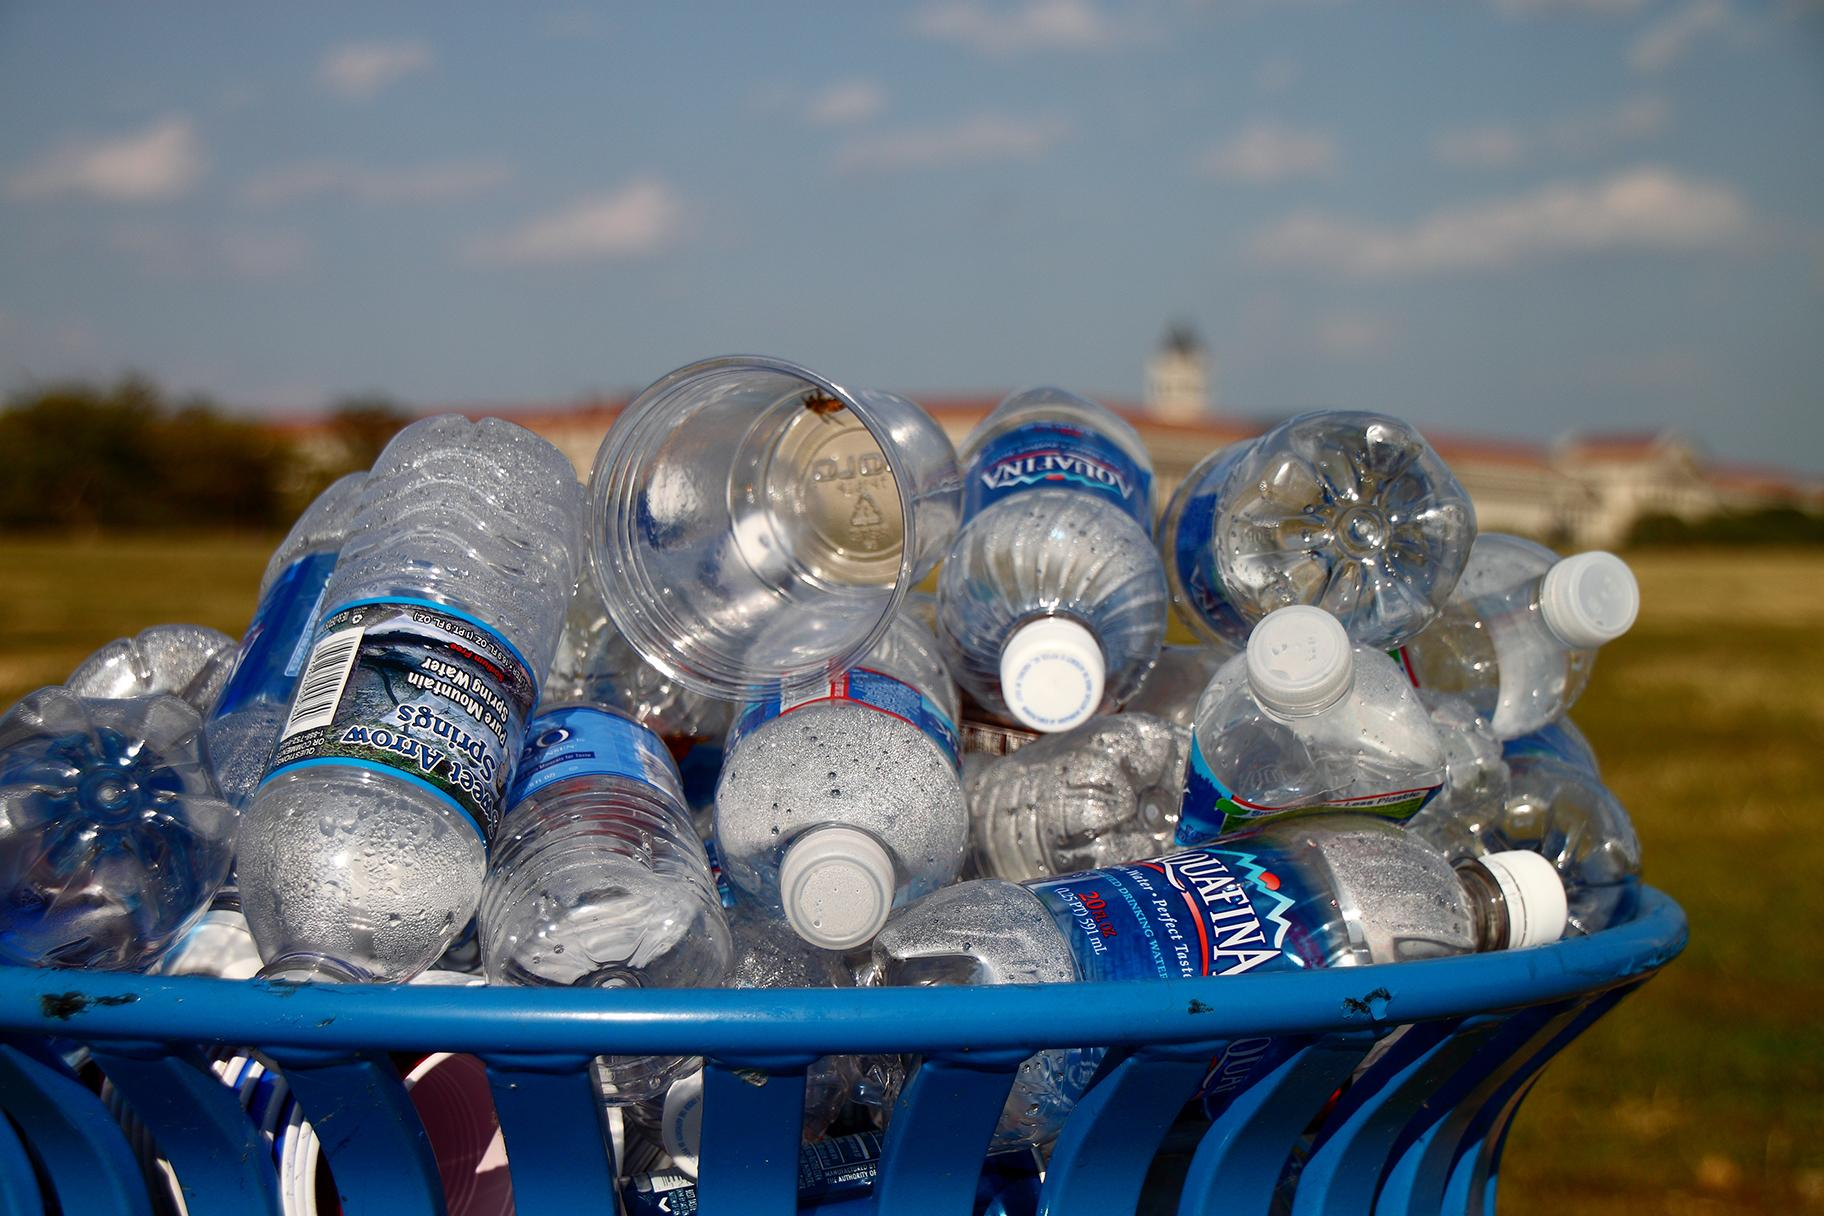 A recycling bin overflowing with water bottles on the National Mall in Washington, D.C., on Sept. 25, 2010. (Mr.TinDC / Flickr)